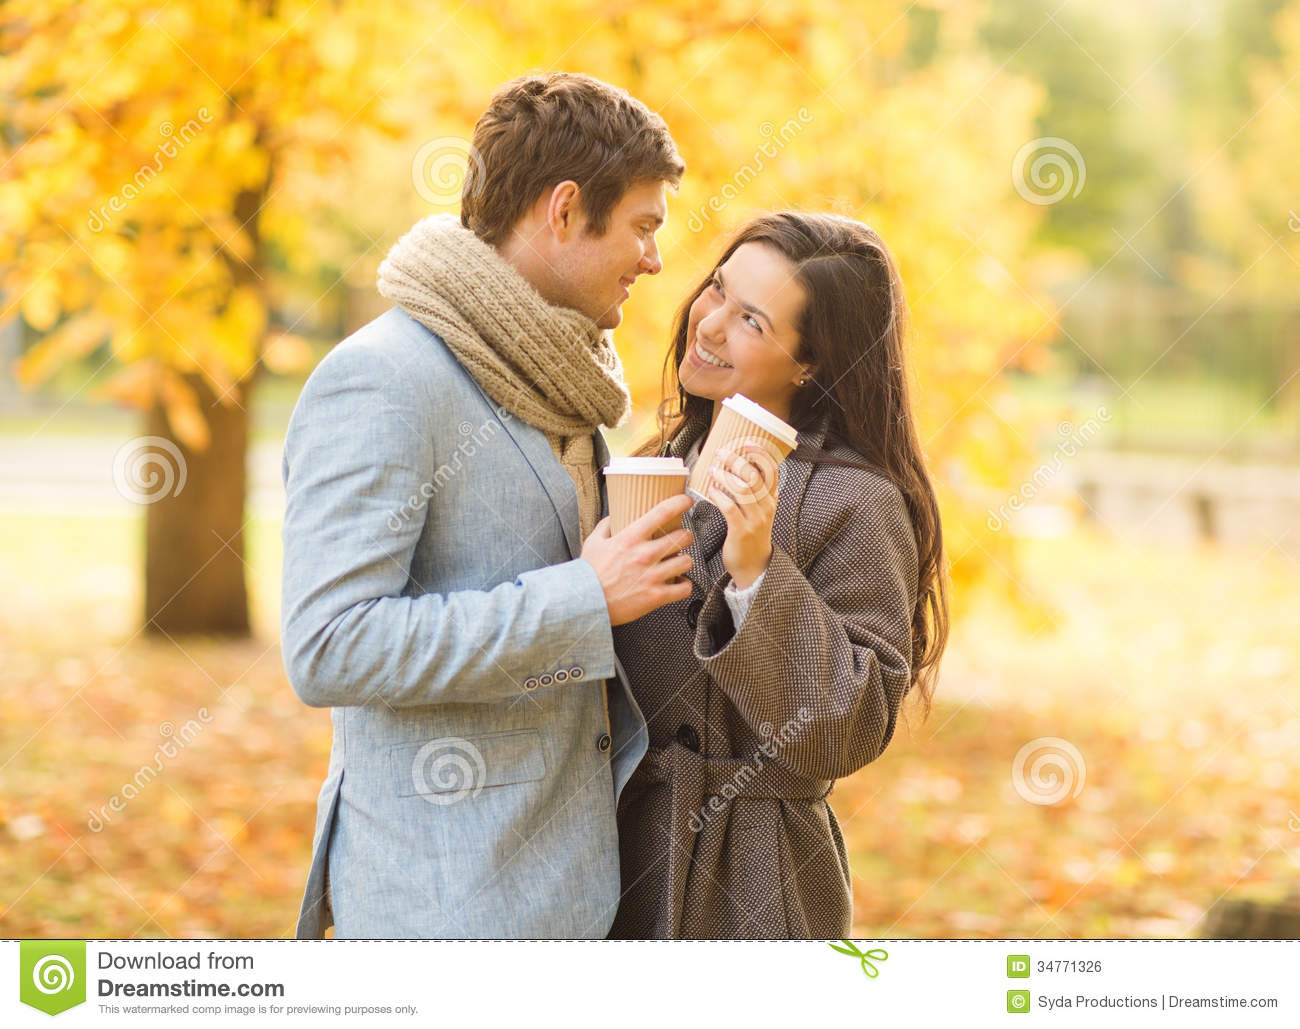 babson park hindu dating site Personal ads for babson park, fl are a great way to find a life partner, movie date, or a quick hookup personals are for people local to babson park, fl and are for ages 18+ of.